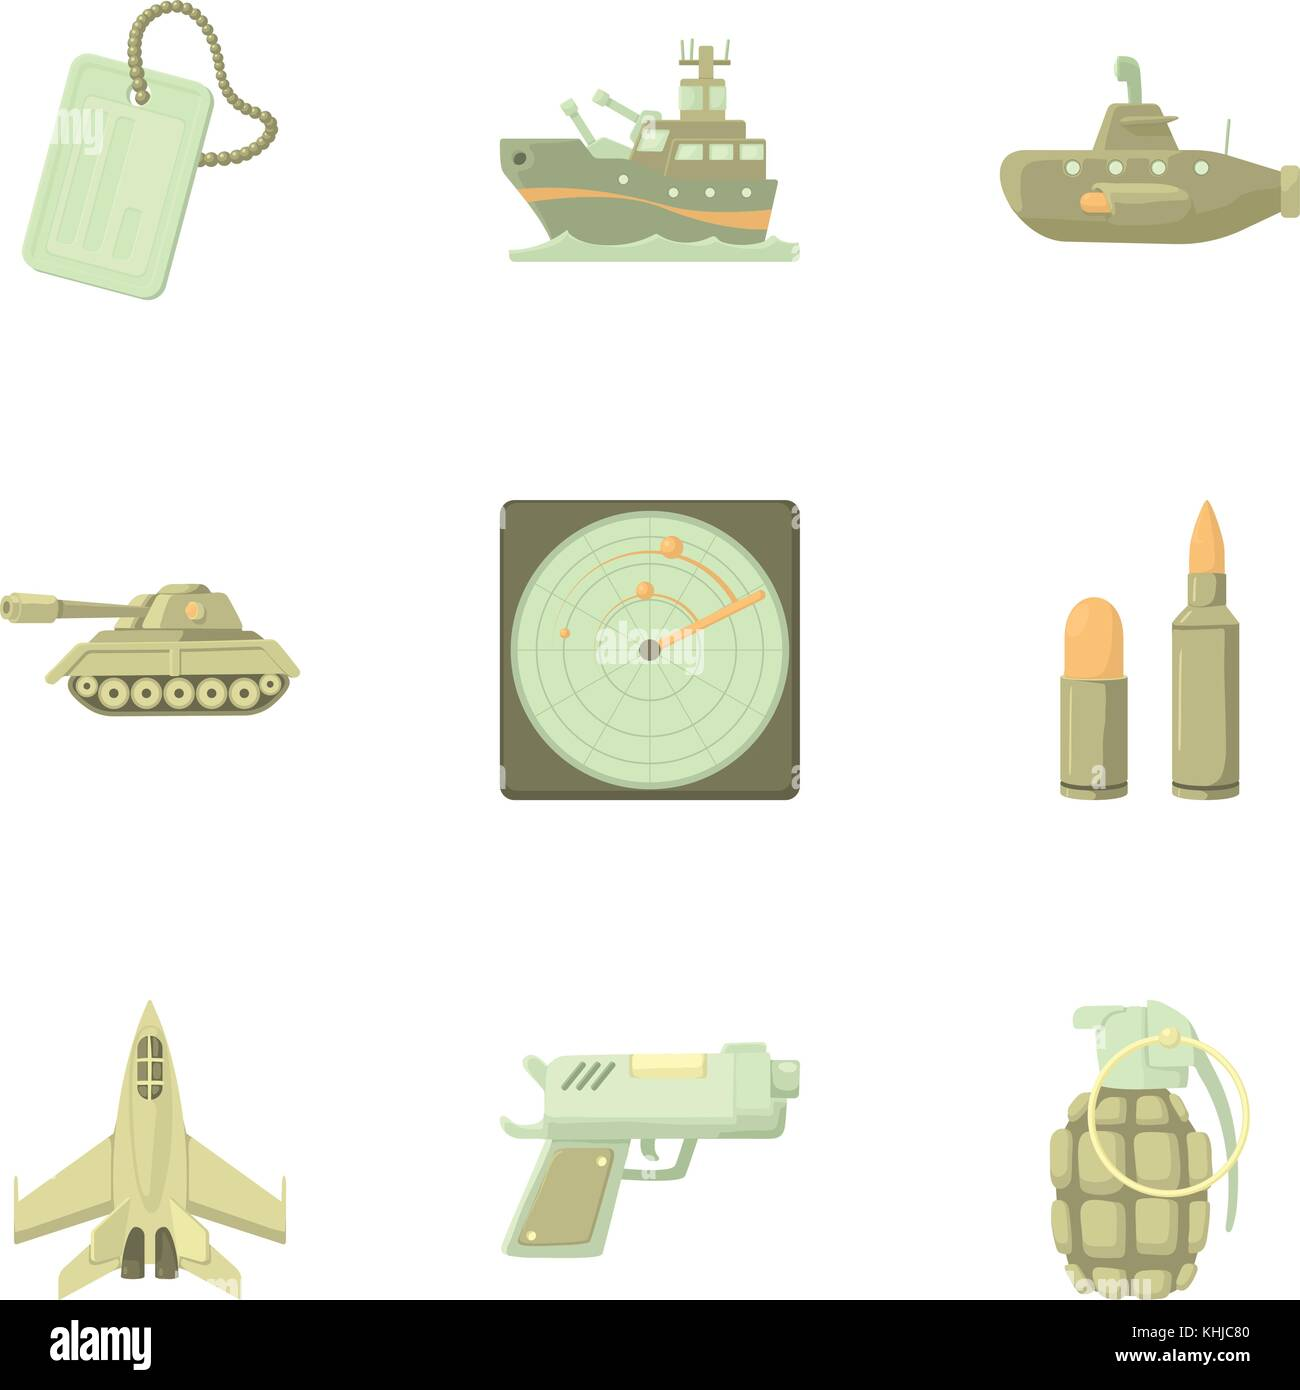 Weaponry icons set, cartoon style - Stock Image